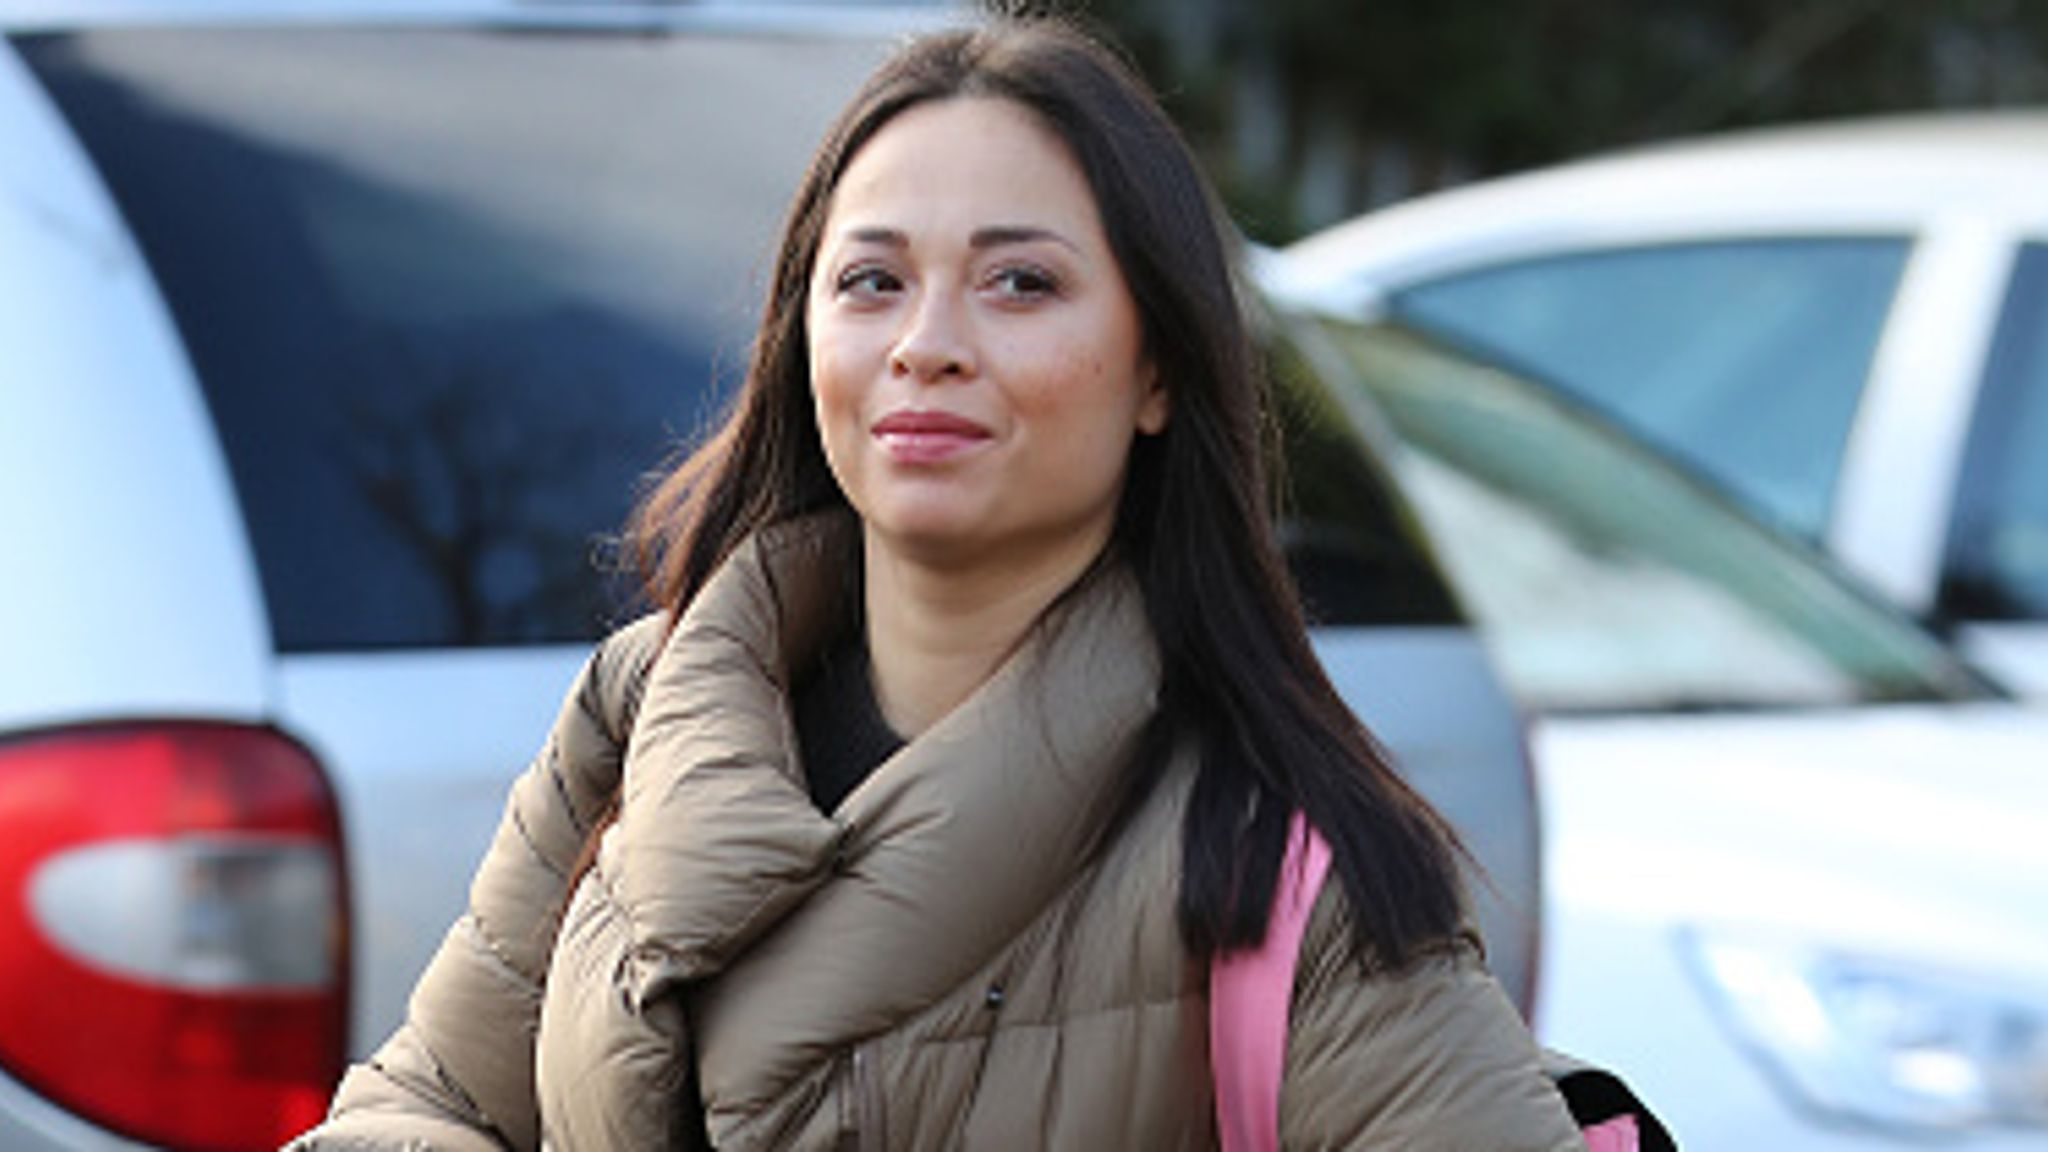 Katya Jones was Adams' dance partner on the show